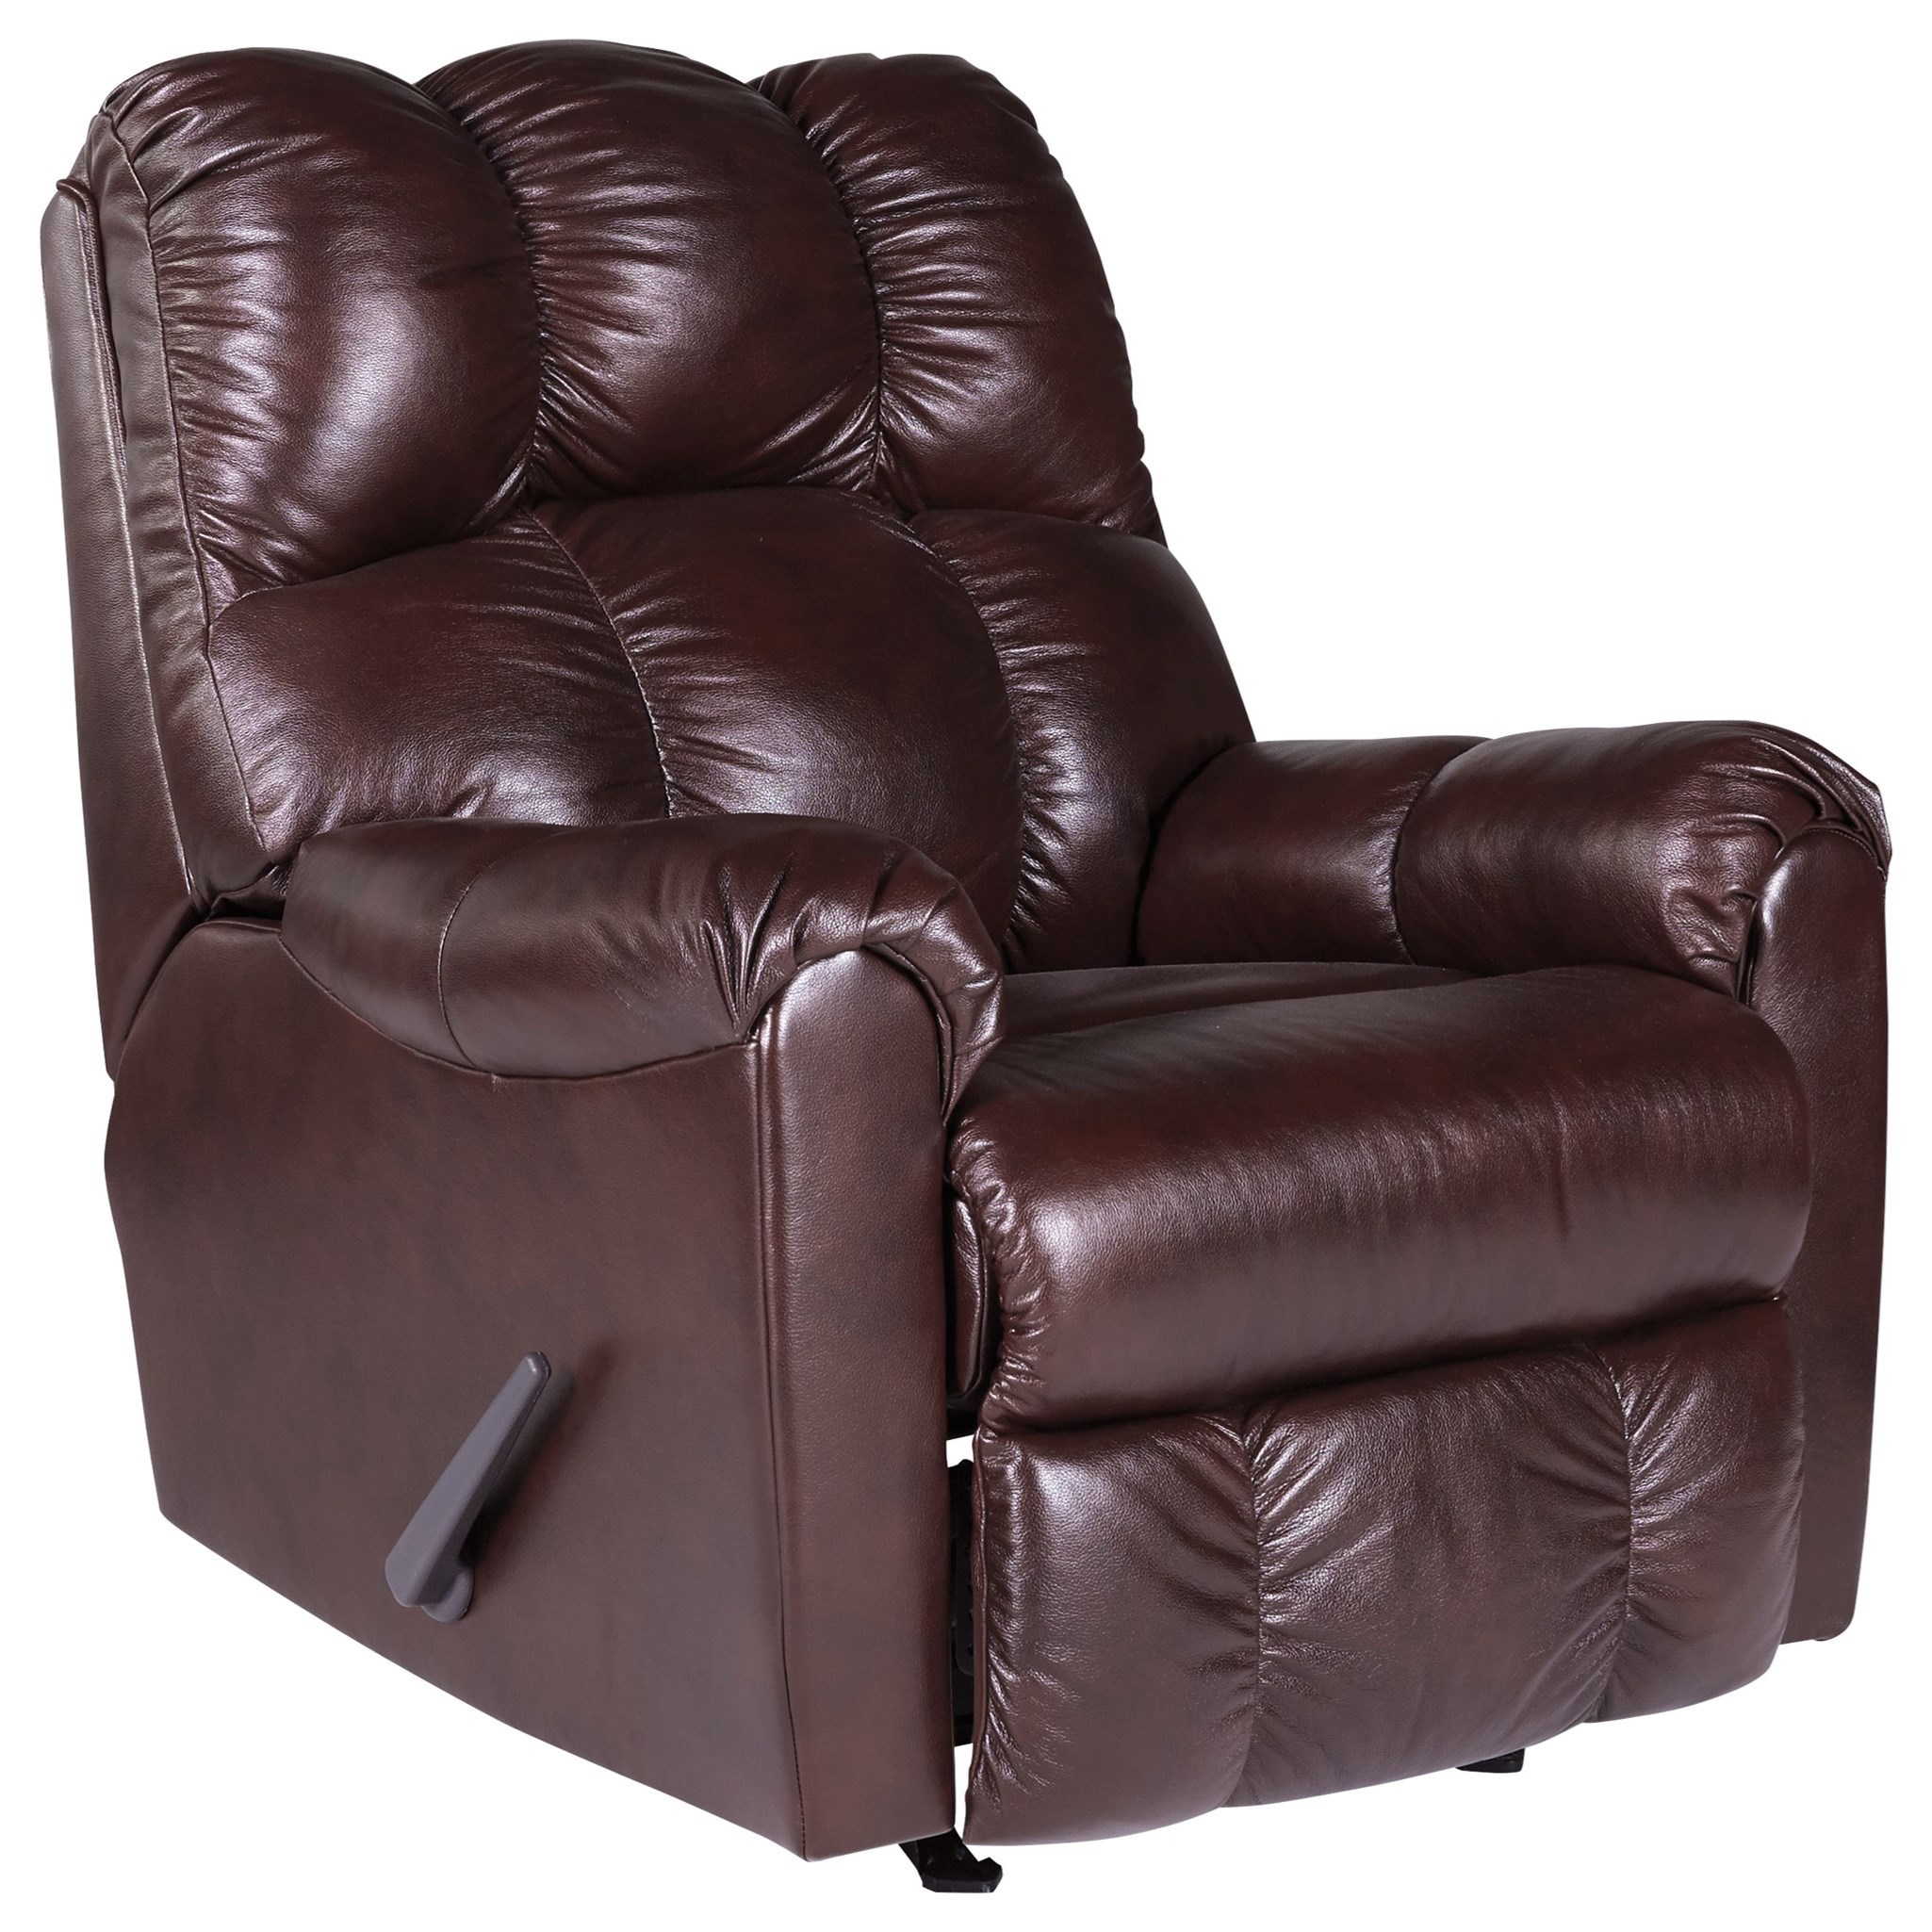 Signature Design By Ashley Denaraw Leather Match Rocker Recliner Value City Furniture Three